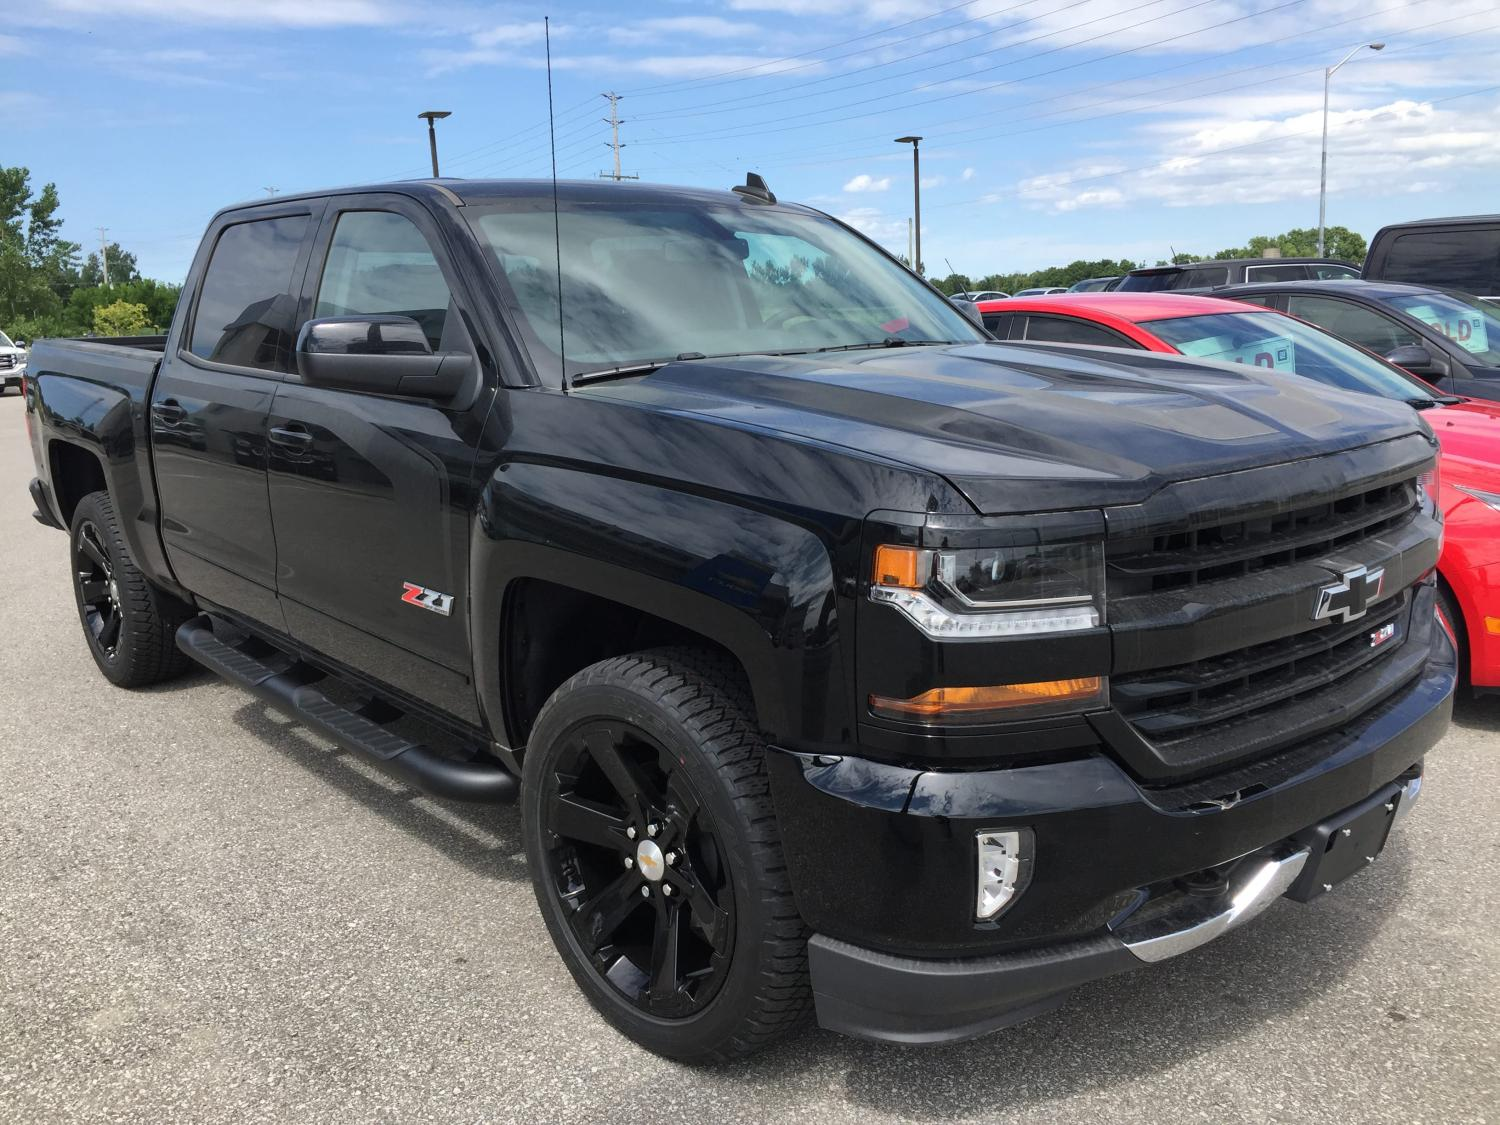 Rally edition on a black truck - decals? - 2014 / 2015 ...